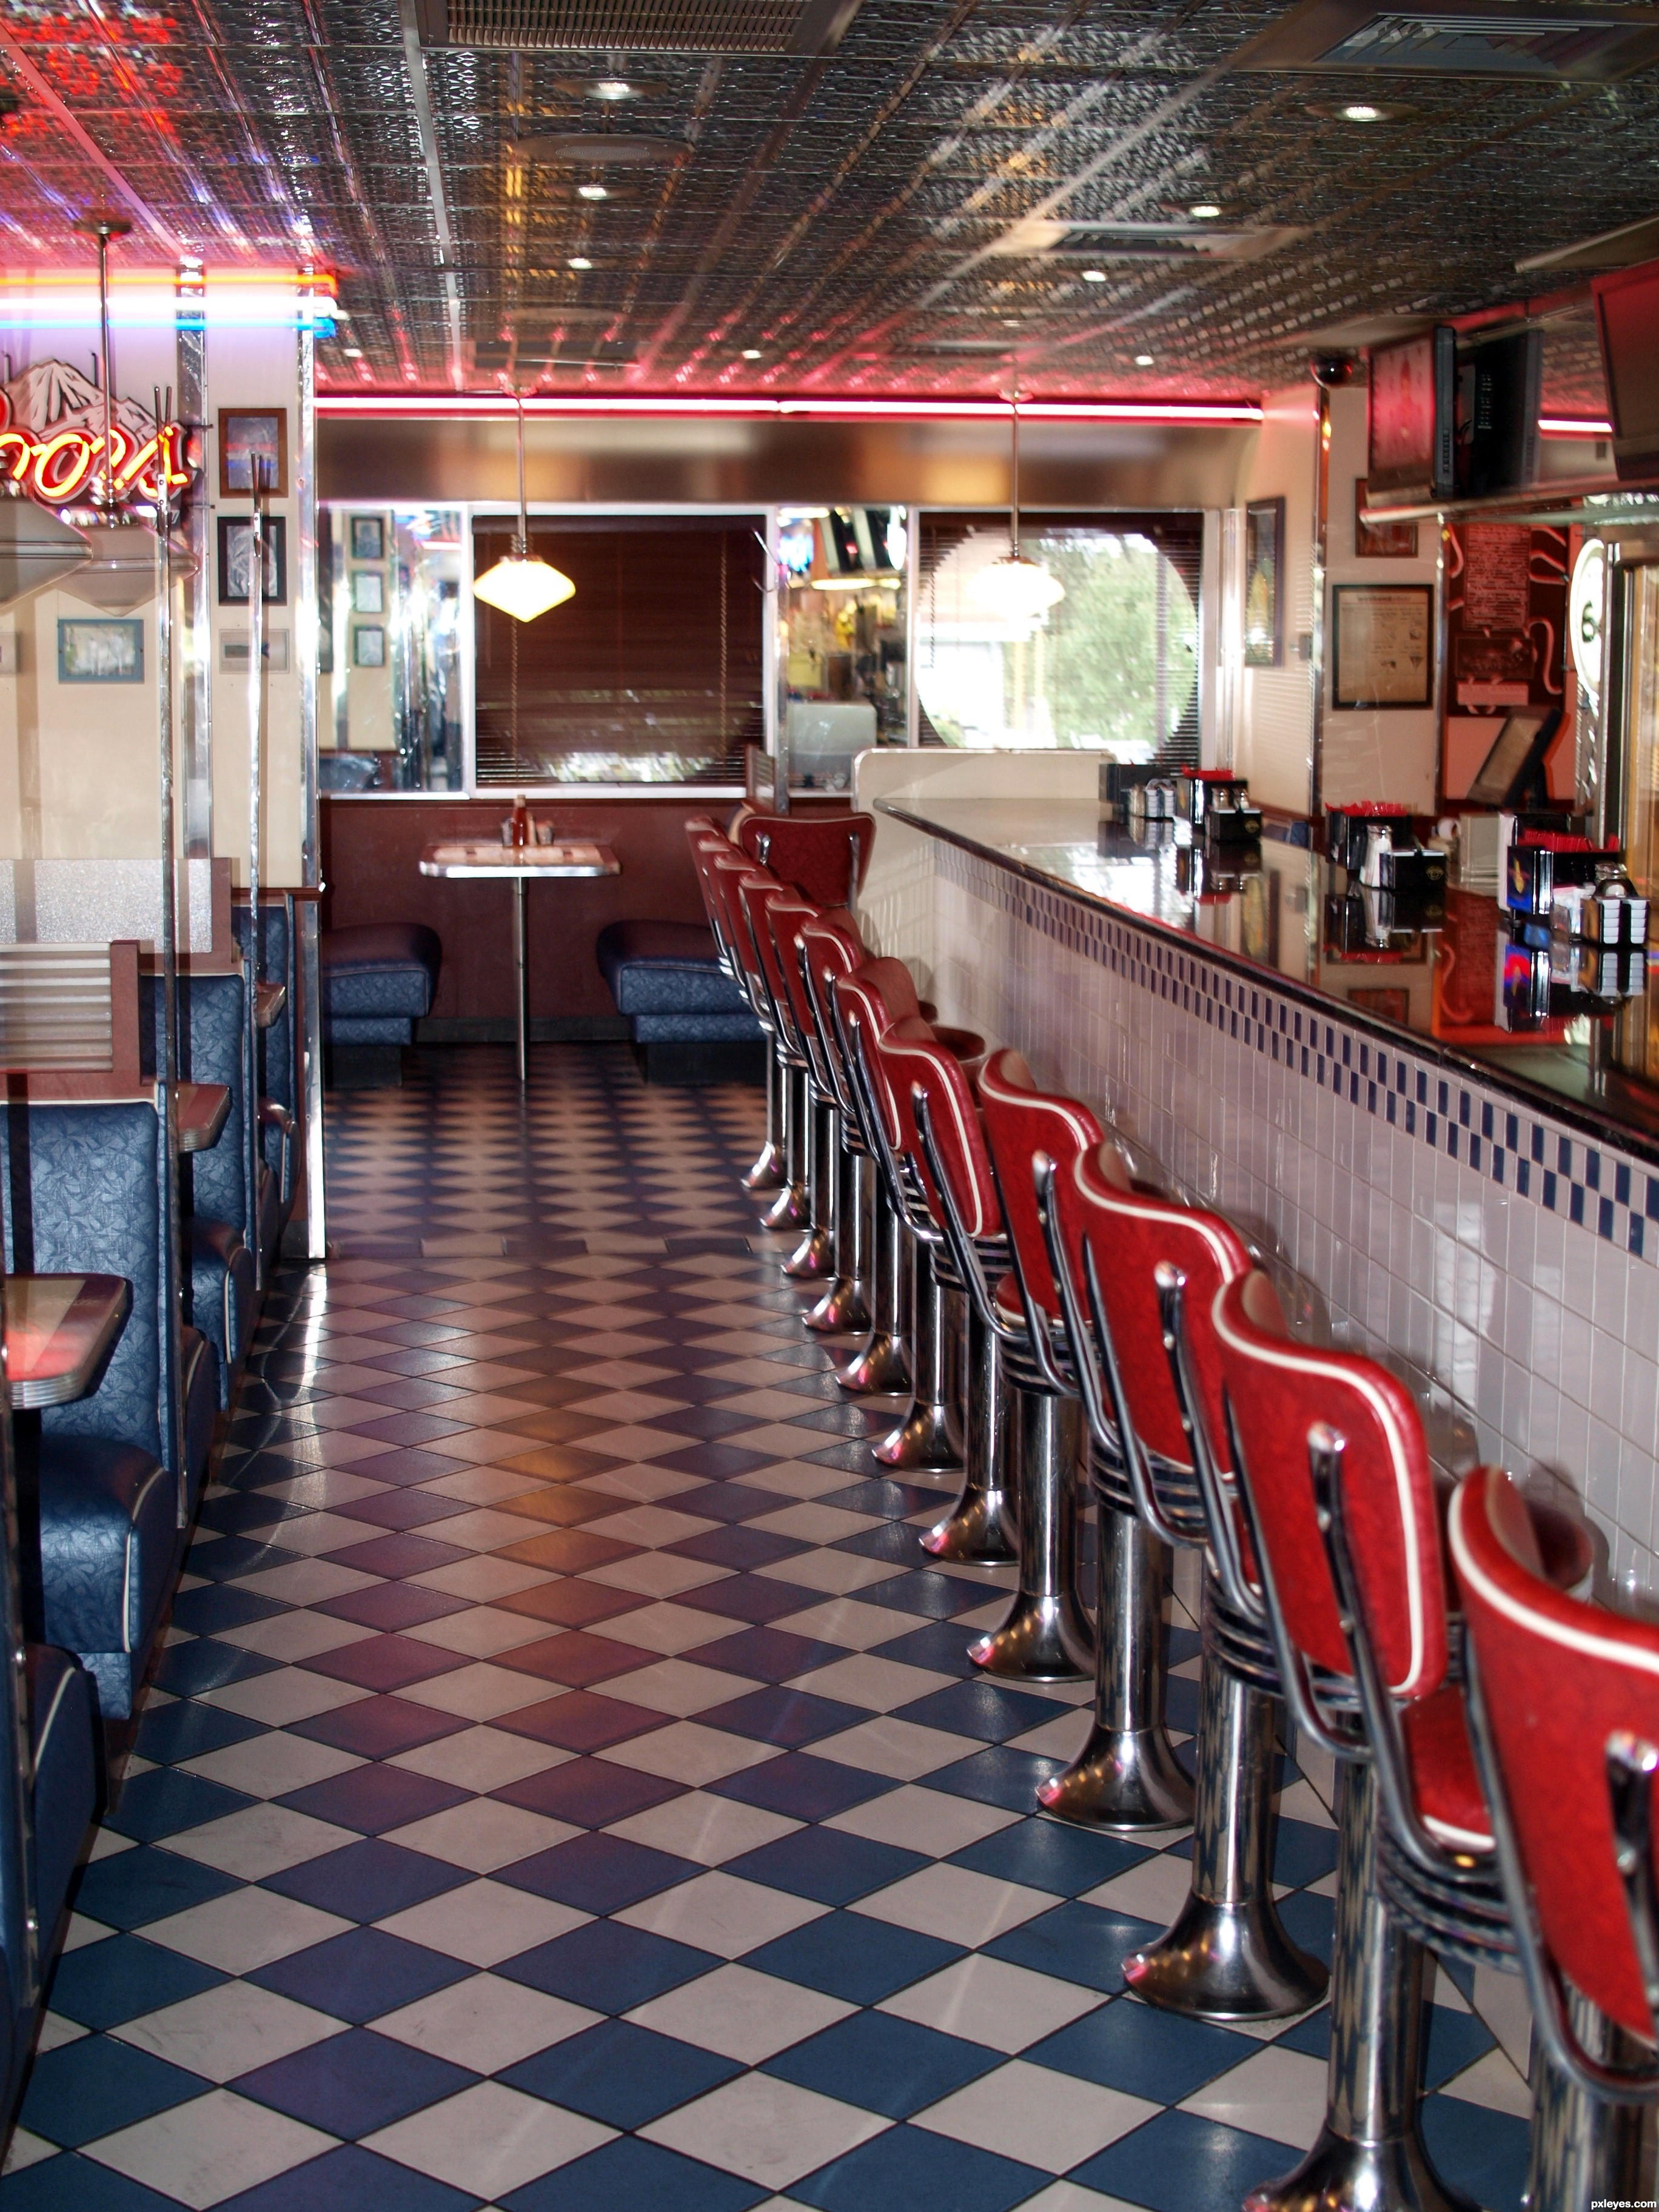 Loukas diner nj usa picture by cmyk46 for restaurants for Diner picture